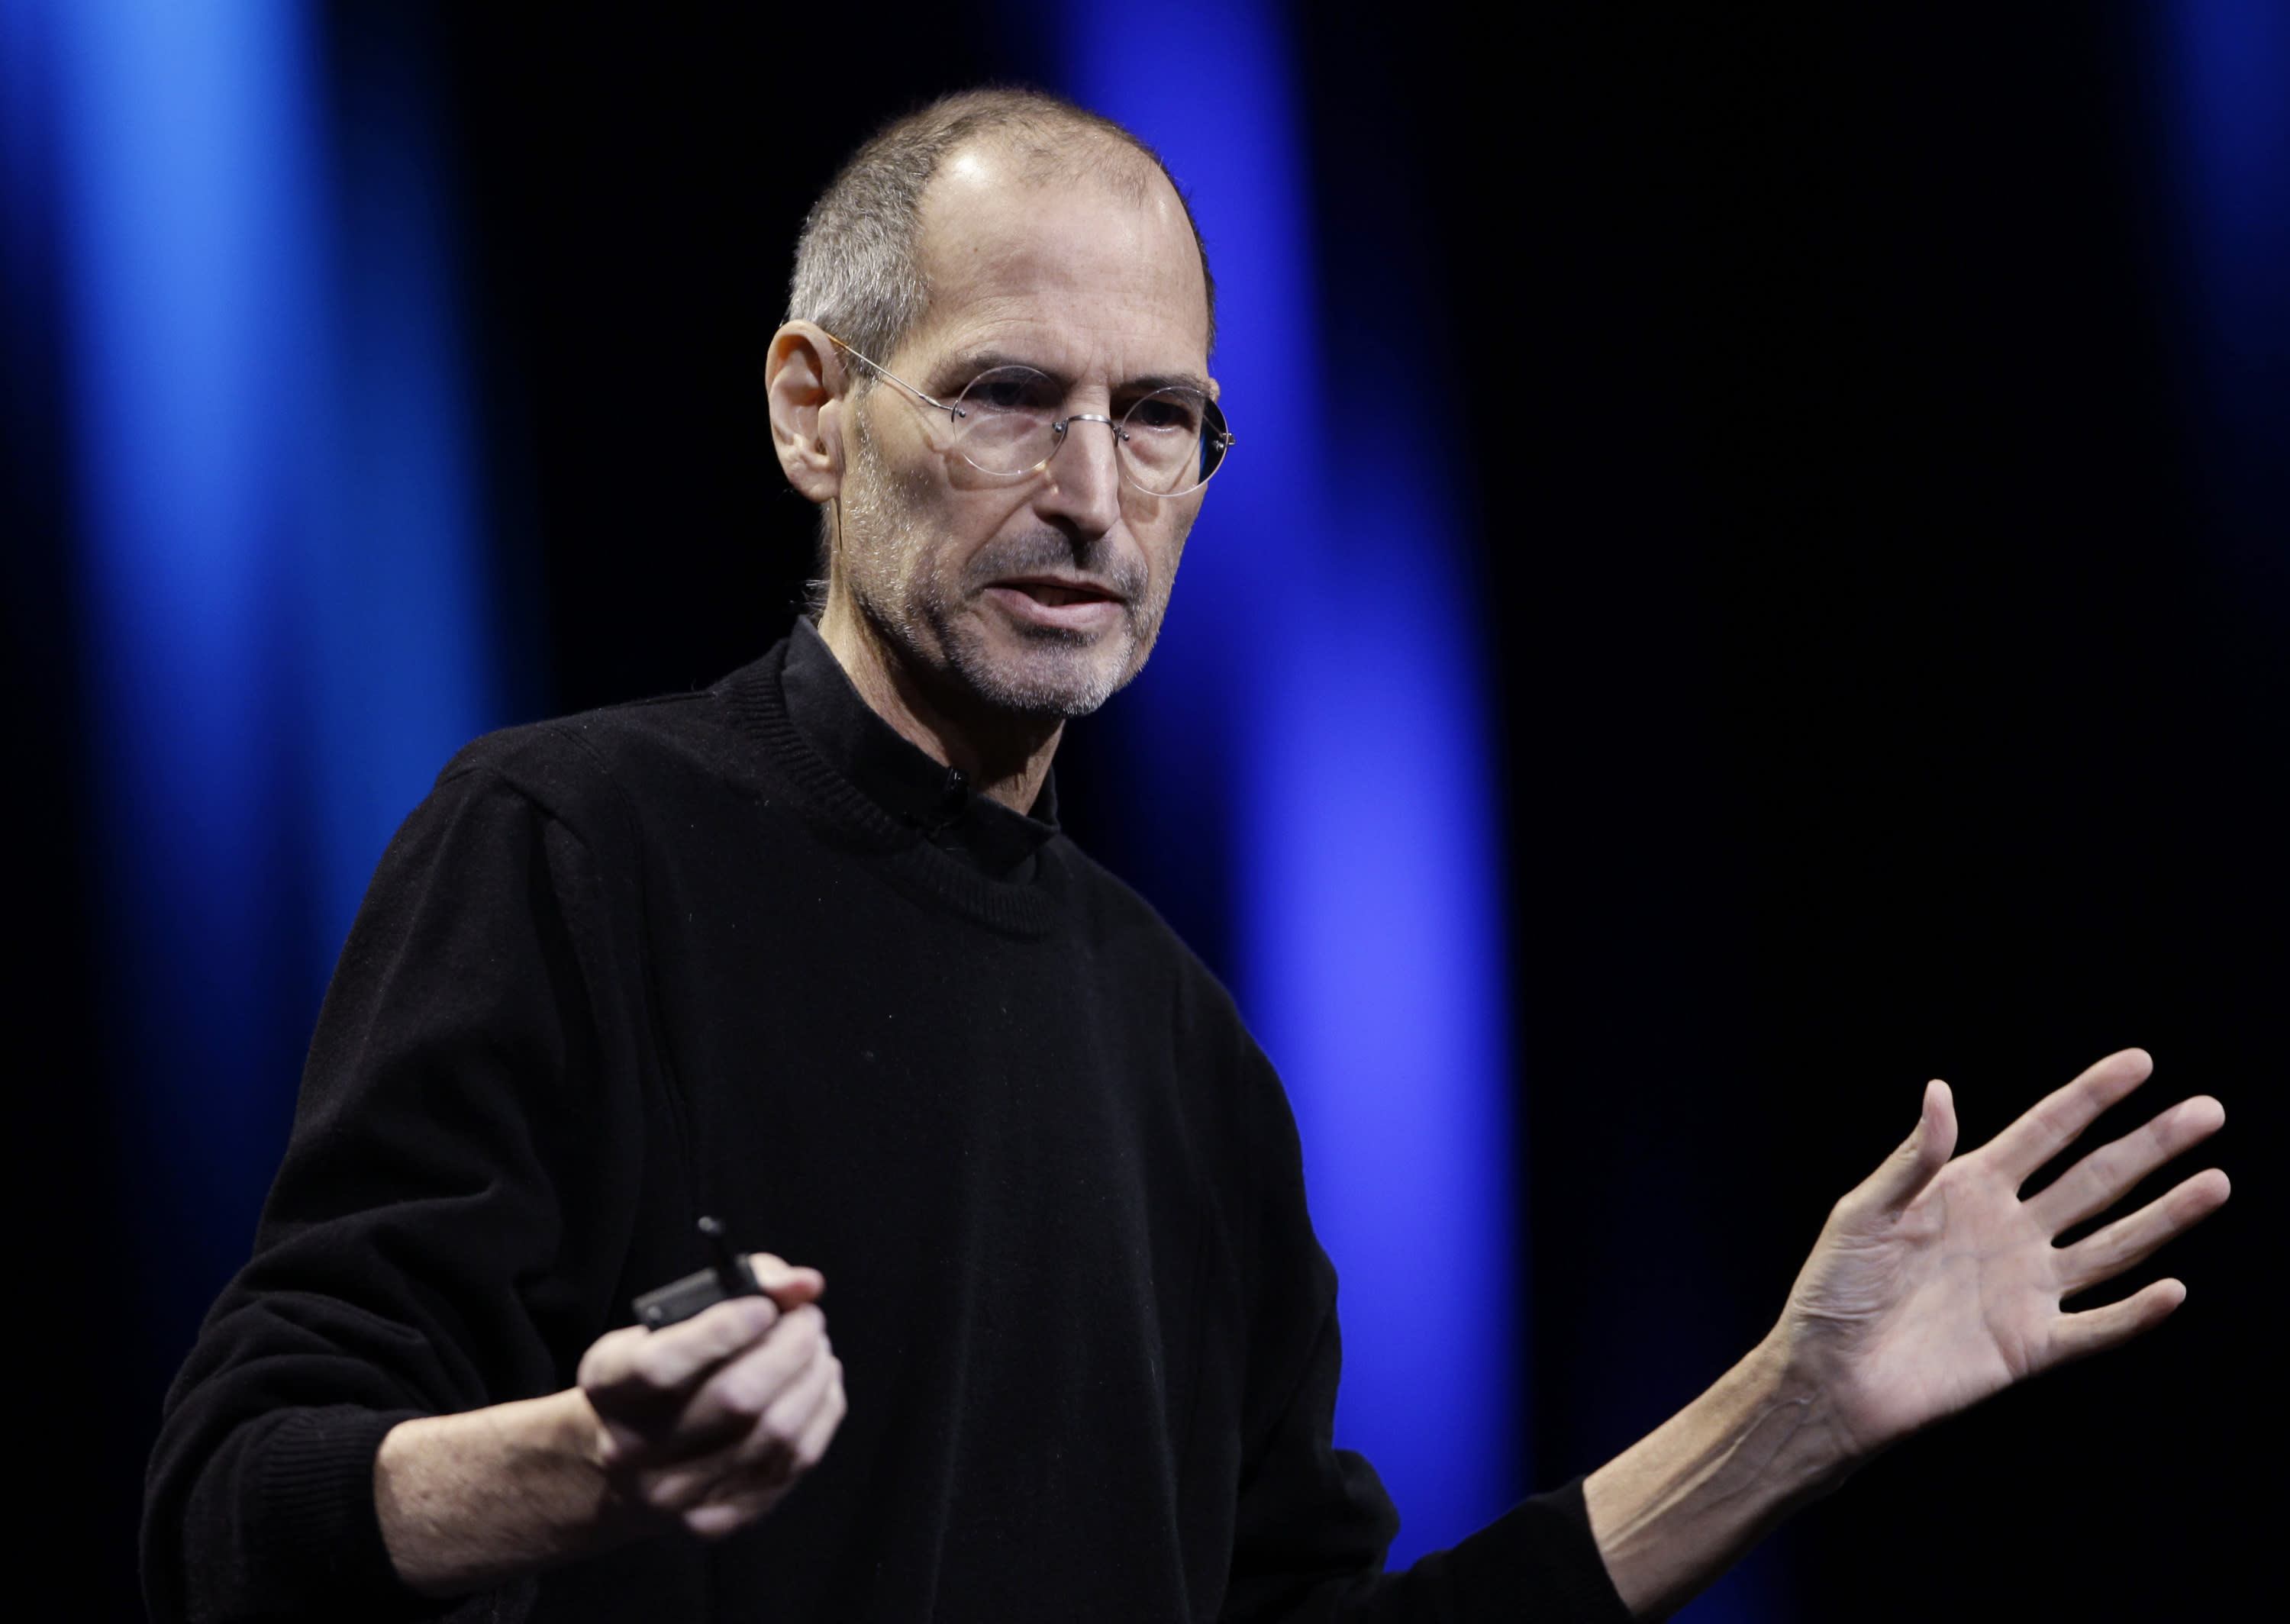 Apple stock made people rich and that mattered to Steve Jobs